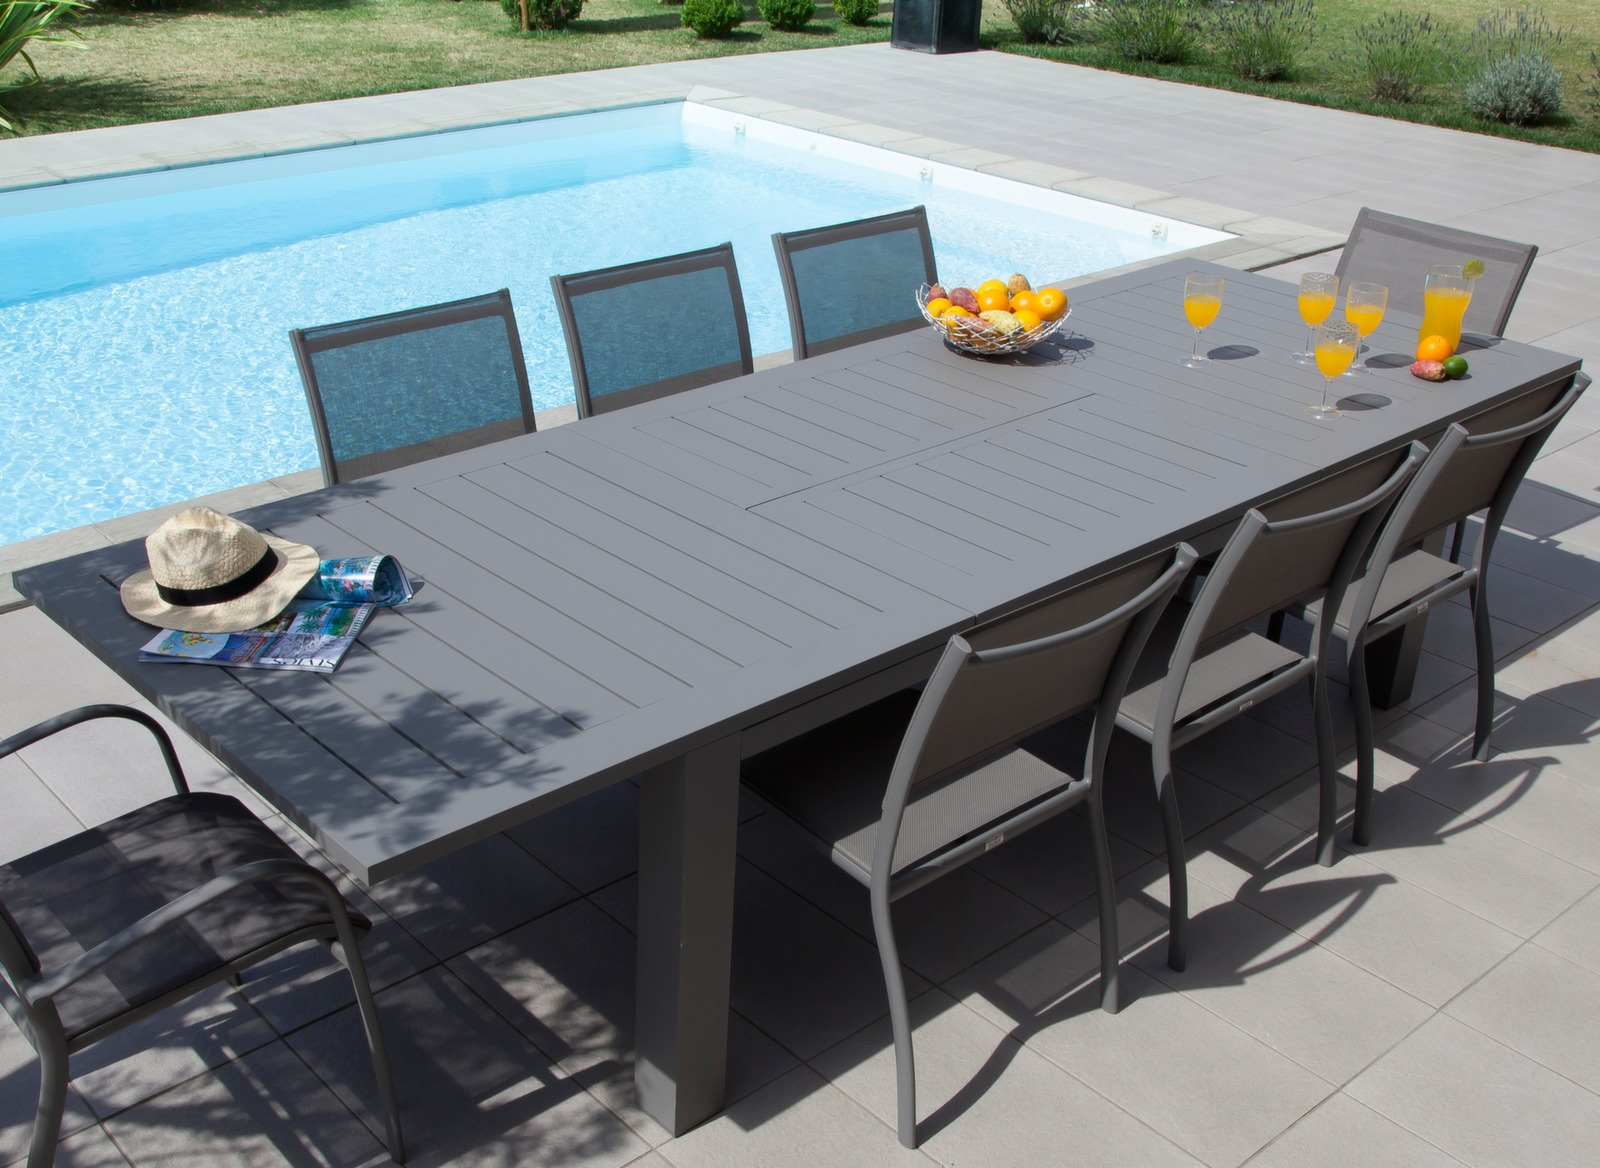 Table de jardin aluminium 12 places aurore oc o proloisirs for Table exterieur tridome